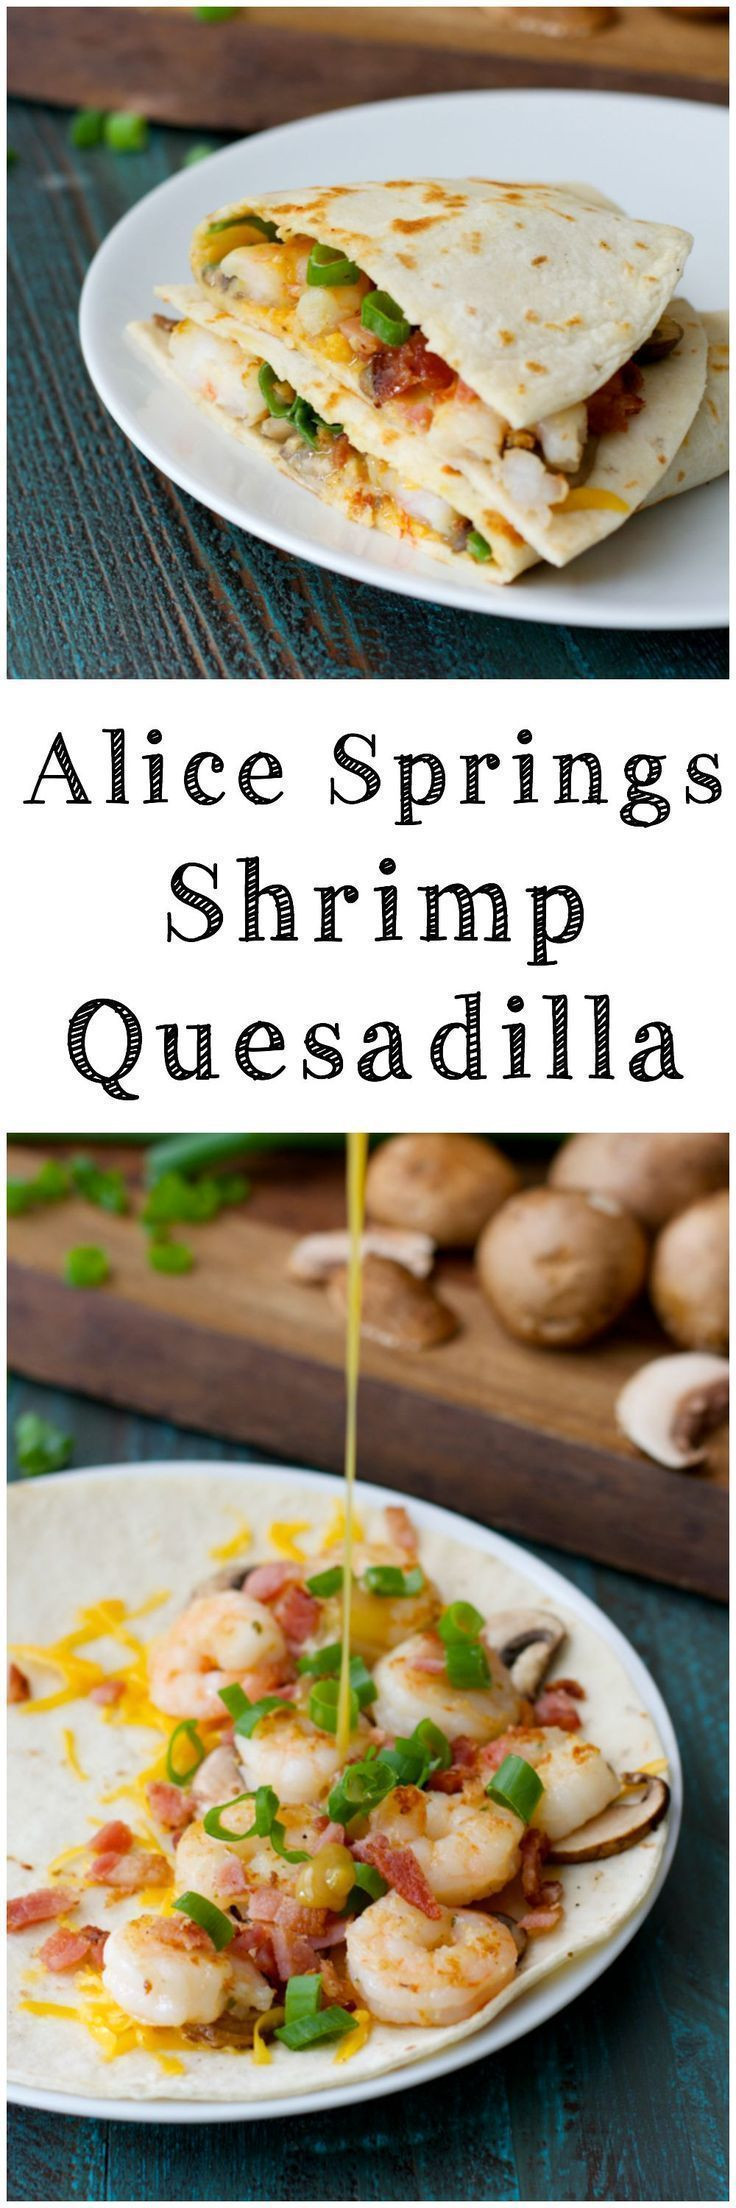 Alice Springs Shrimp Quesadilla! Ready in under 30 minutes! Packed with shrimp, bacon, cheese and a creamy honey mustard sauce!